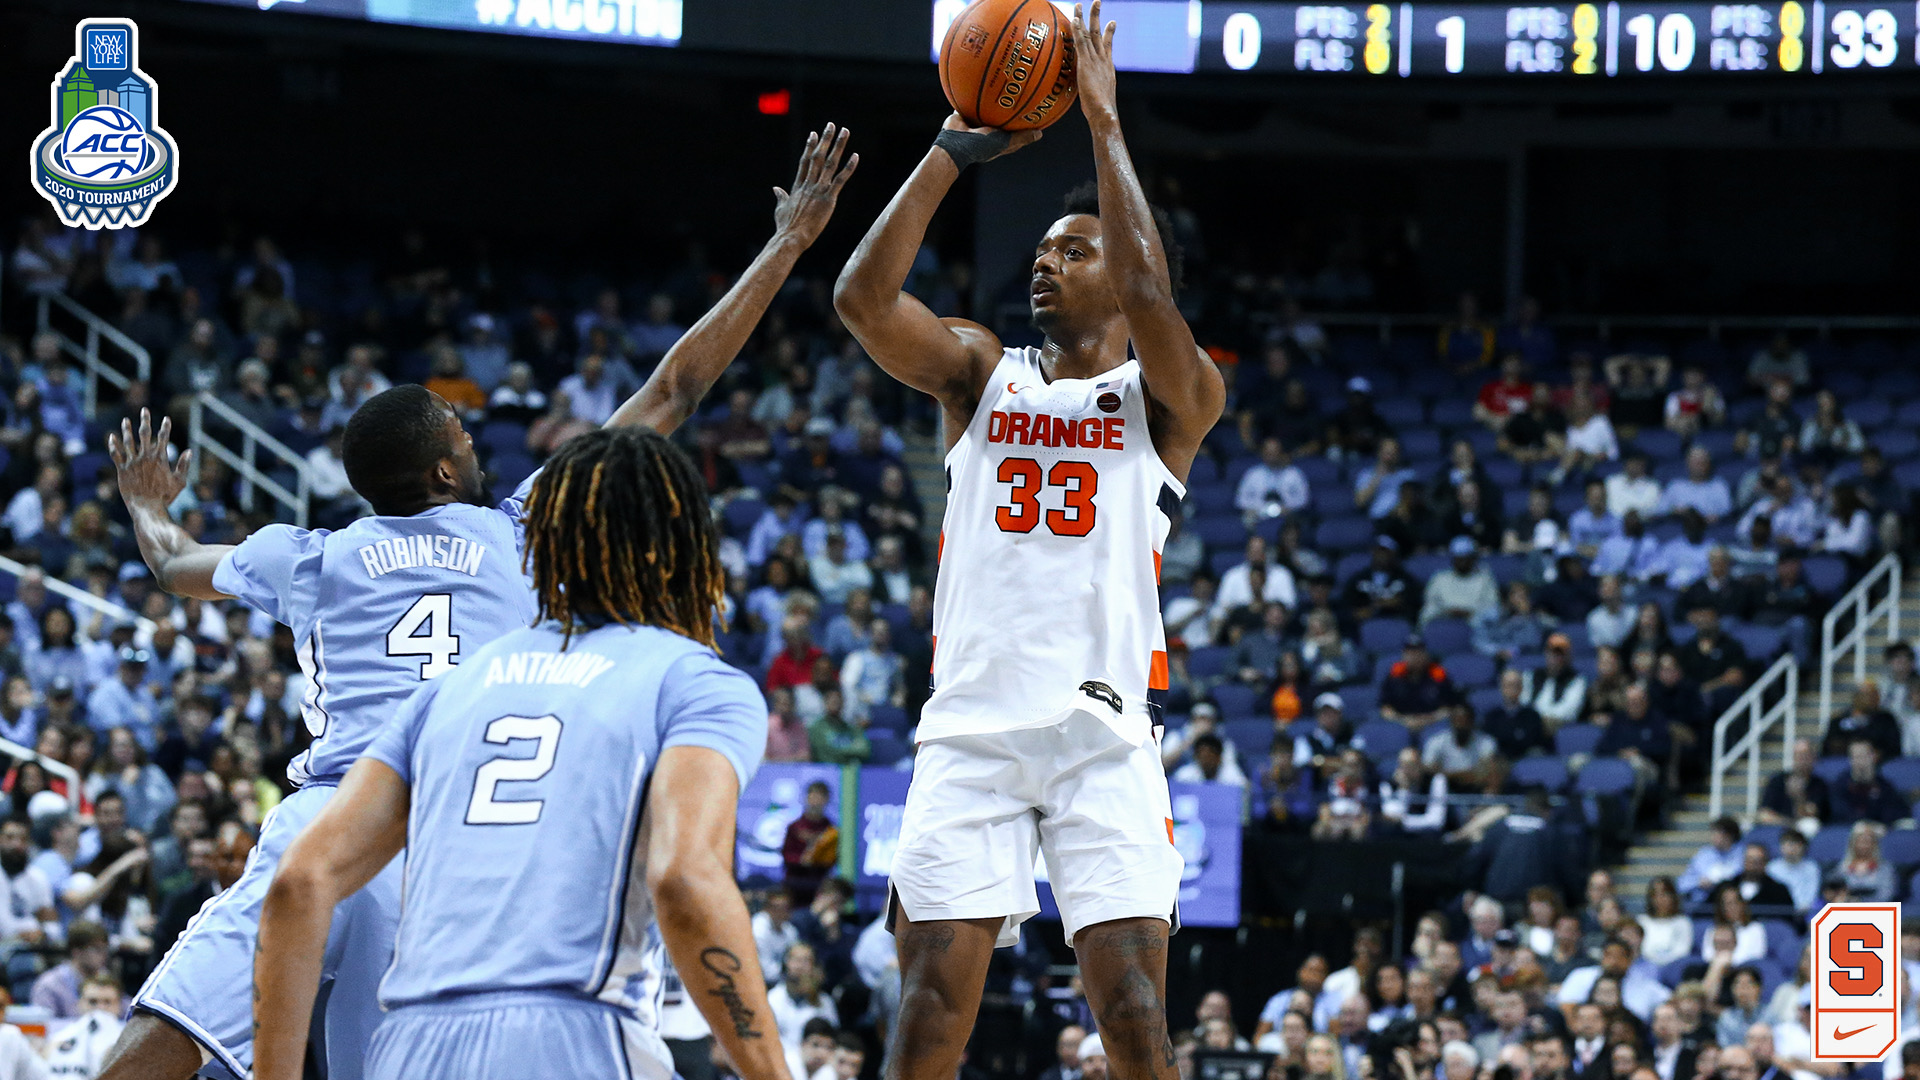 ORANGE GAME DAY: Syracuse takes on North Carolina tonight in ACC second round